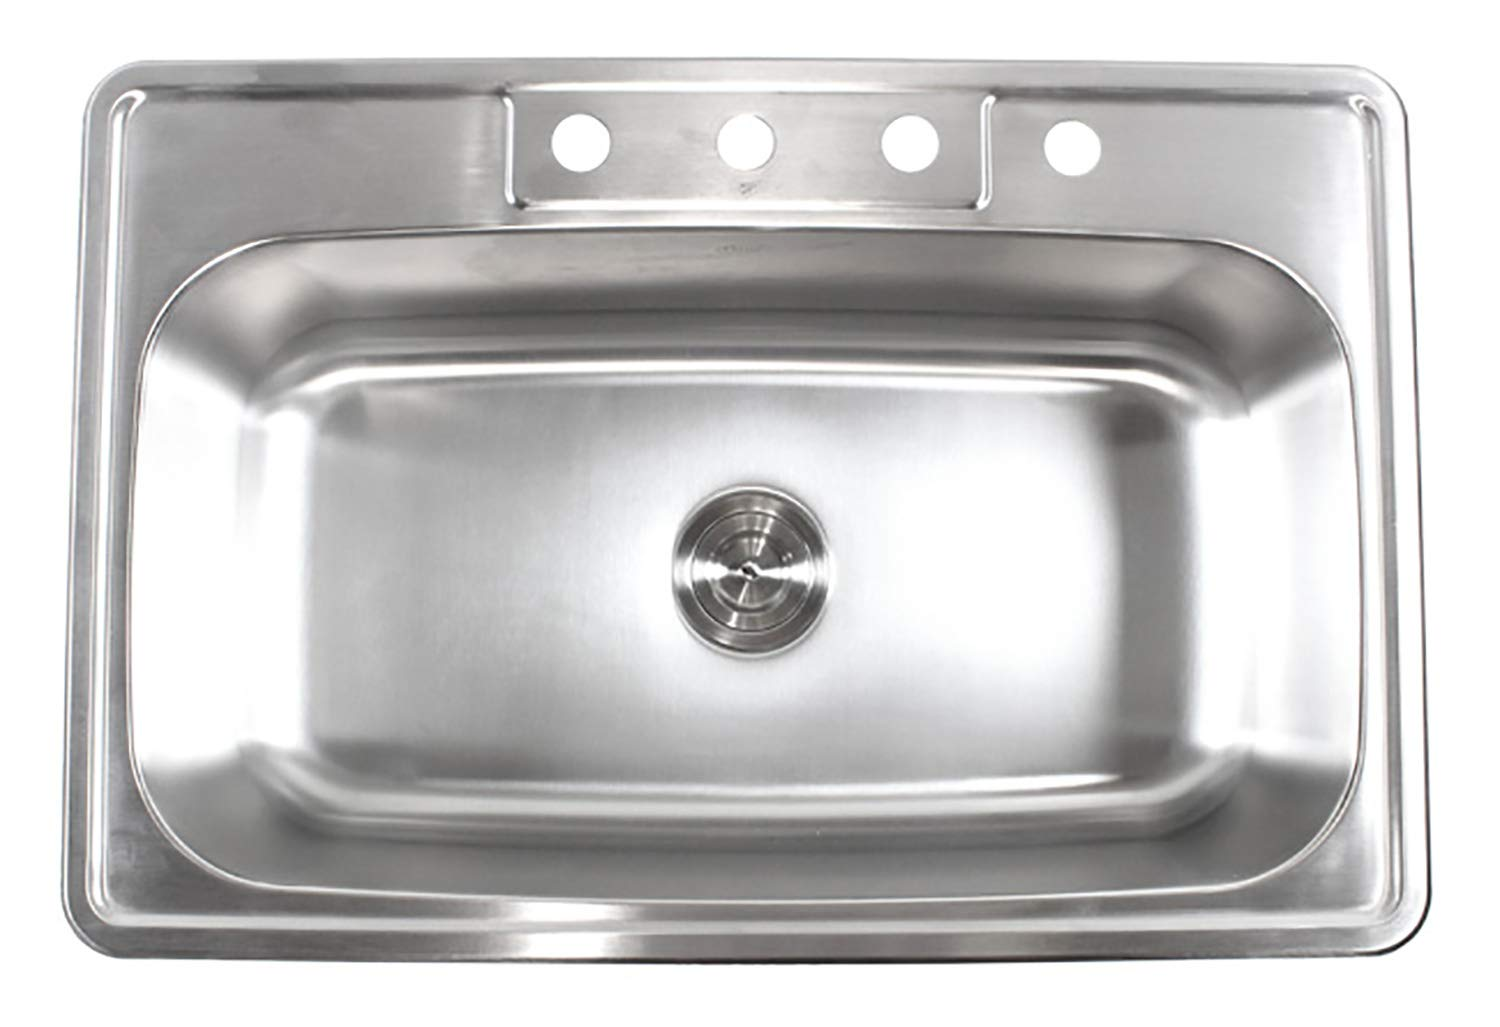 33 Inch Top-mount/Drop-in Stainless Steel Single Bowl Kitchen Sink With 4 Faucet Holes - 18 Gauge